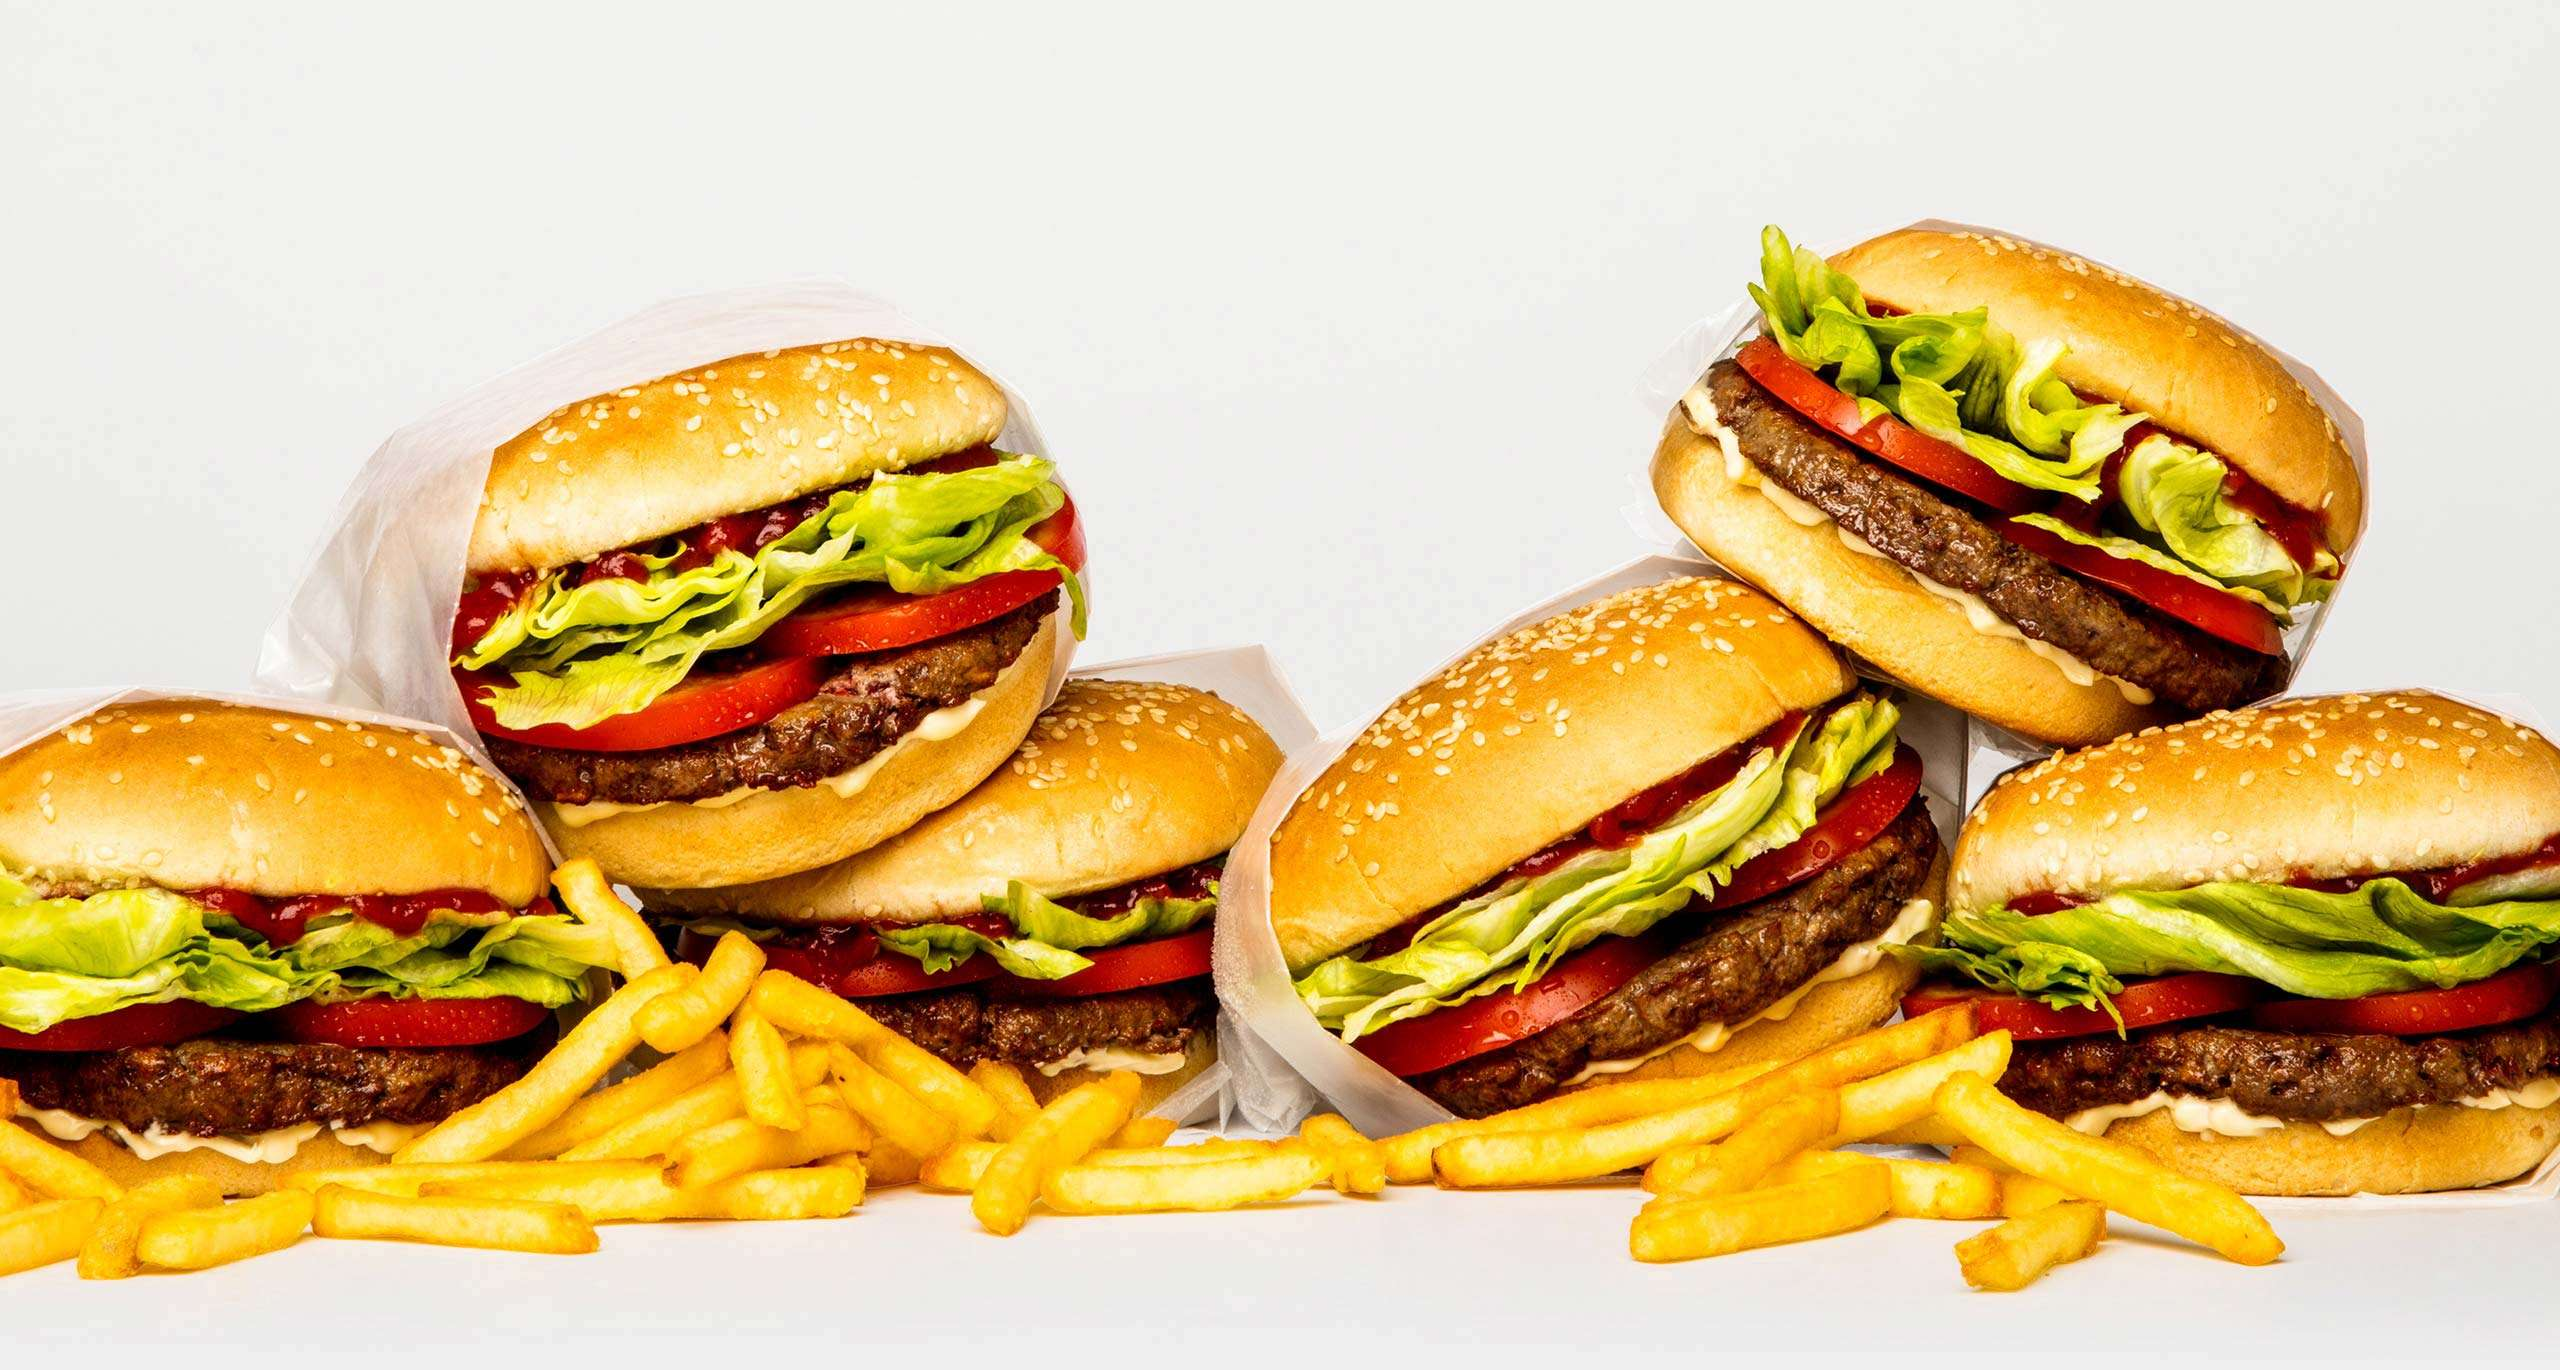 Remember Restaurants? Our pre-lockdown review of the 3 'best' burger places in Bucharest